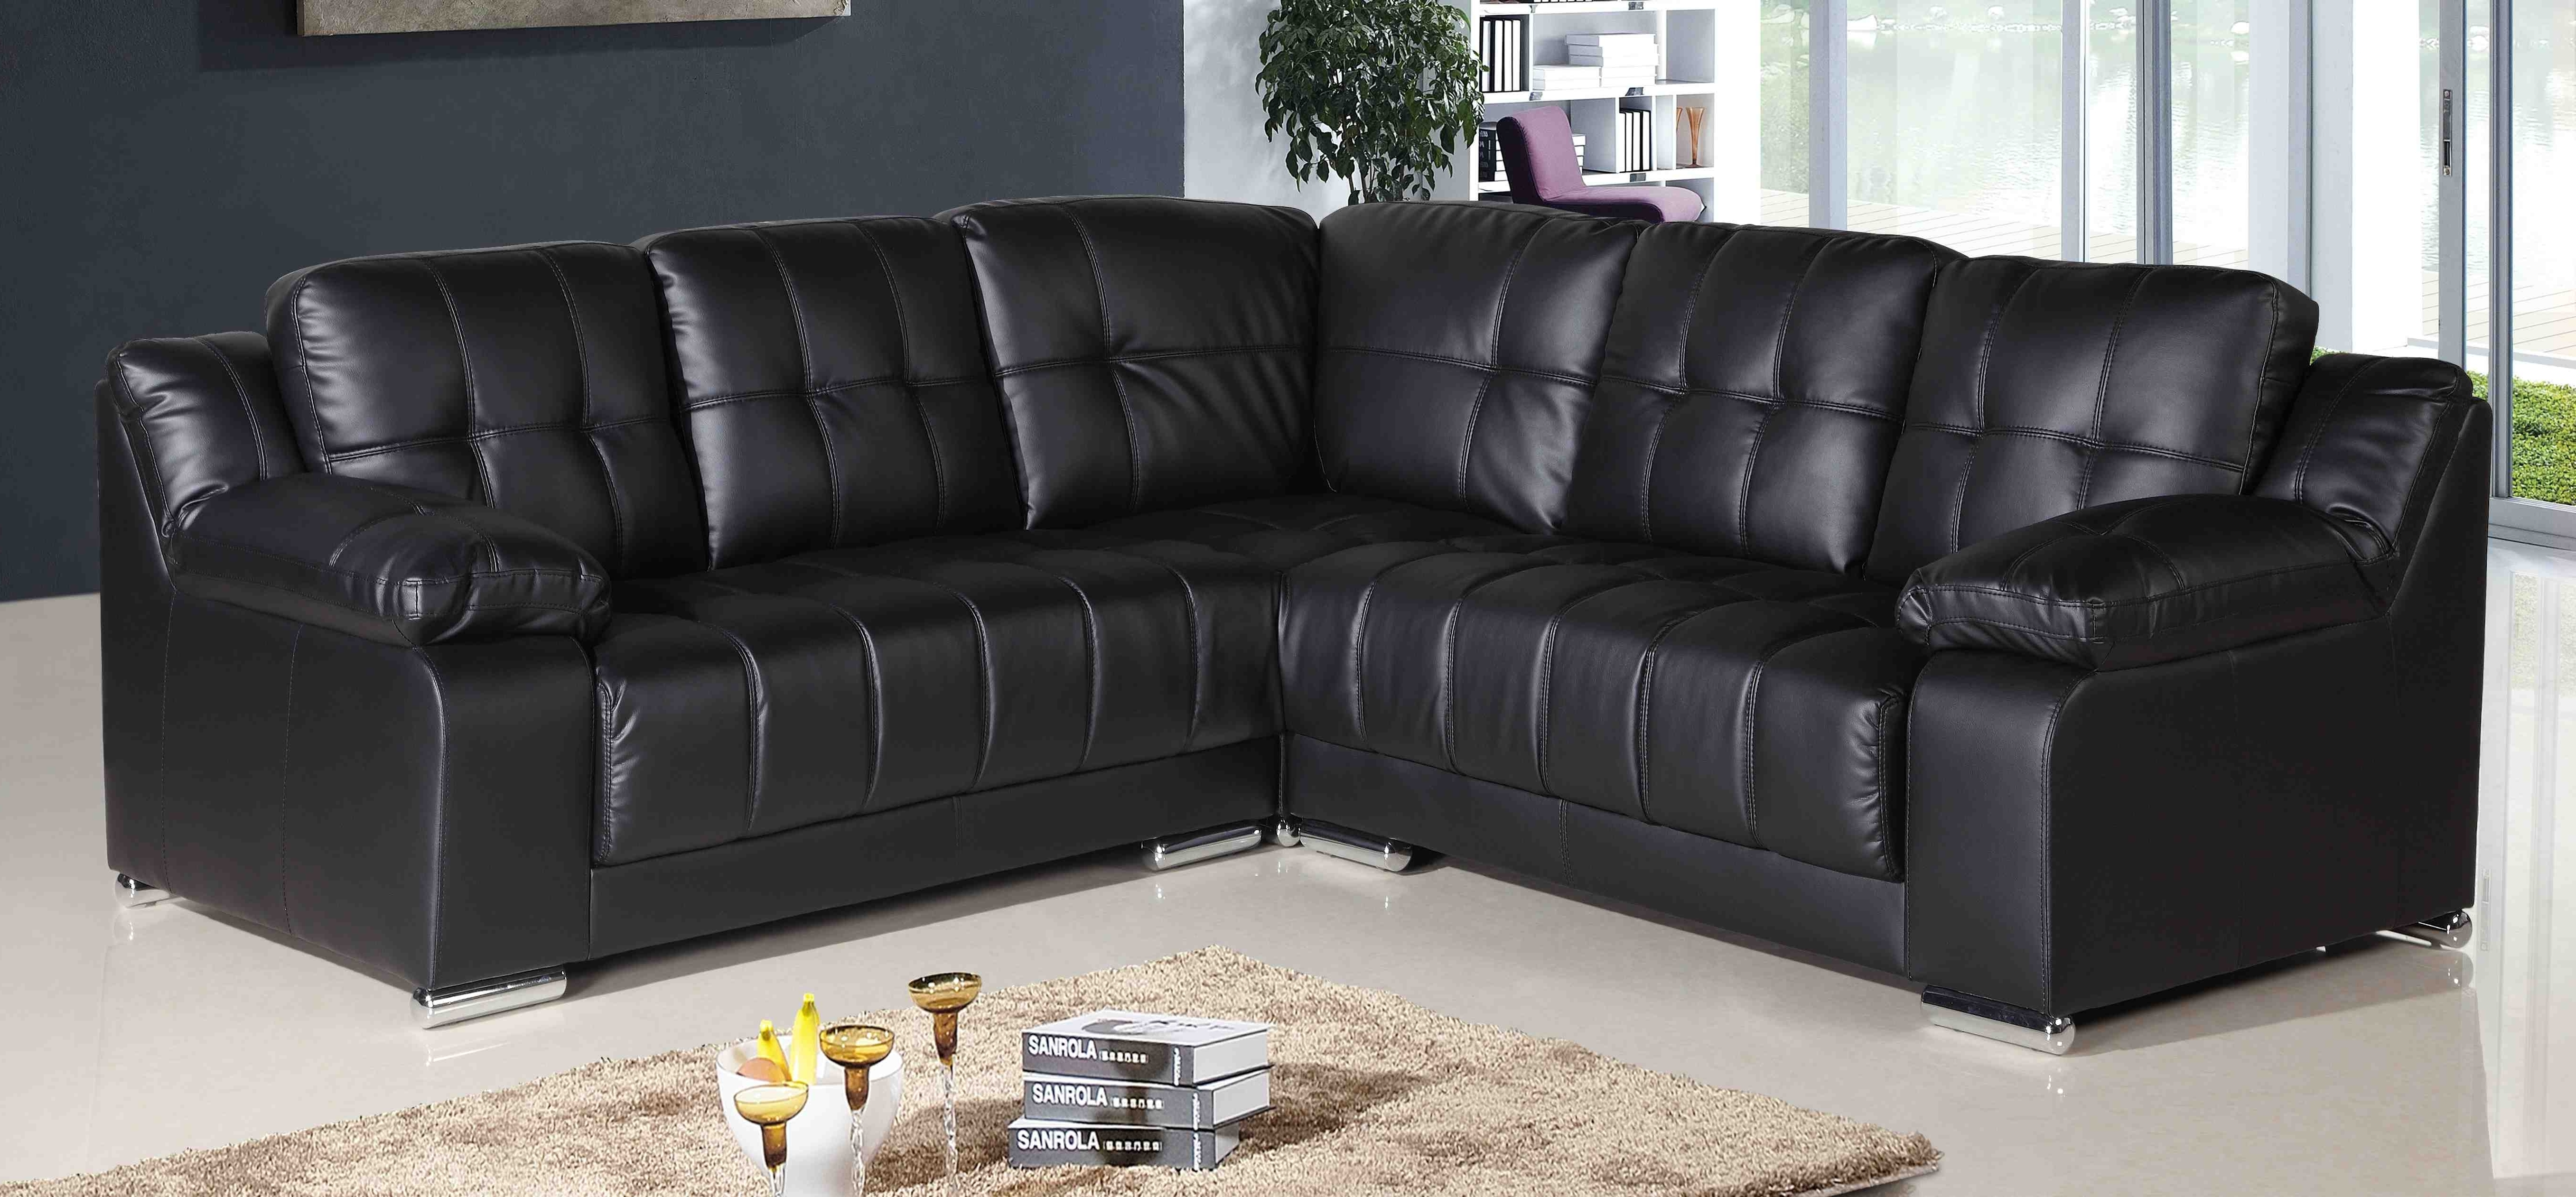 Most Recent Extra Long Leather Corner Sofas • Leather Sofa With Leather Corner Sofas (View 4 of 15)